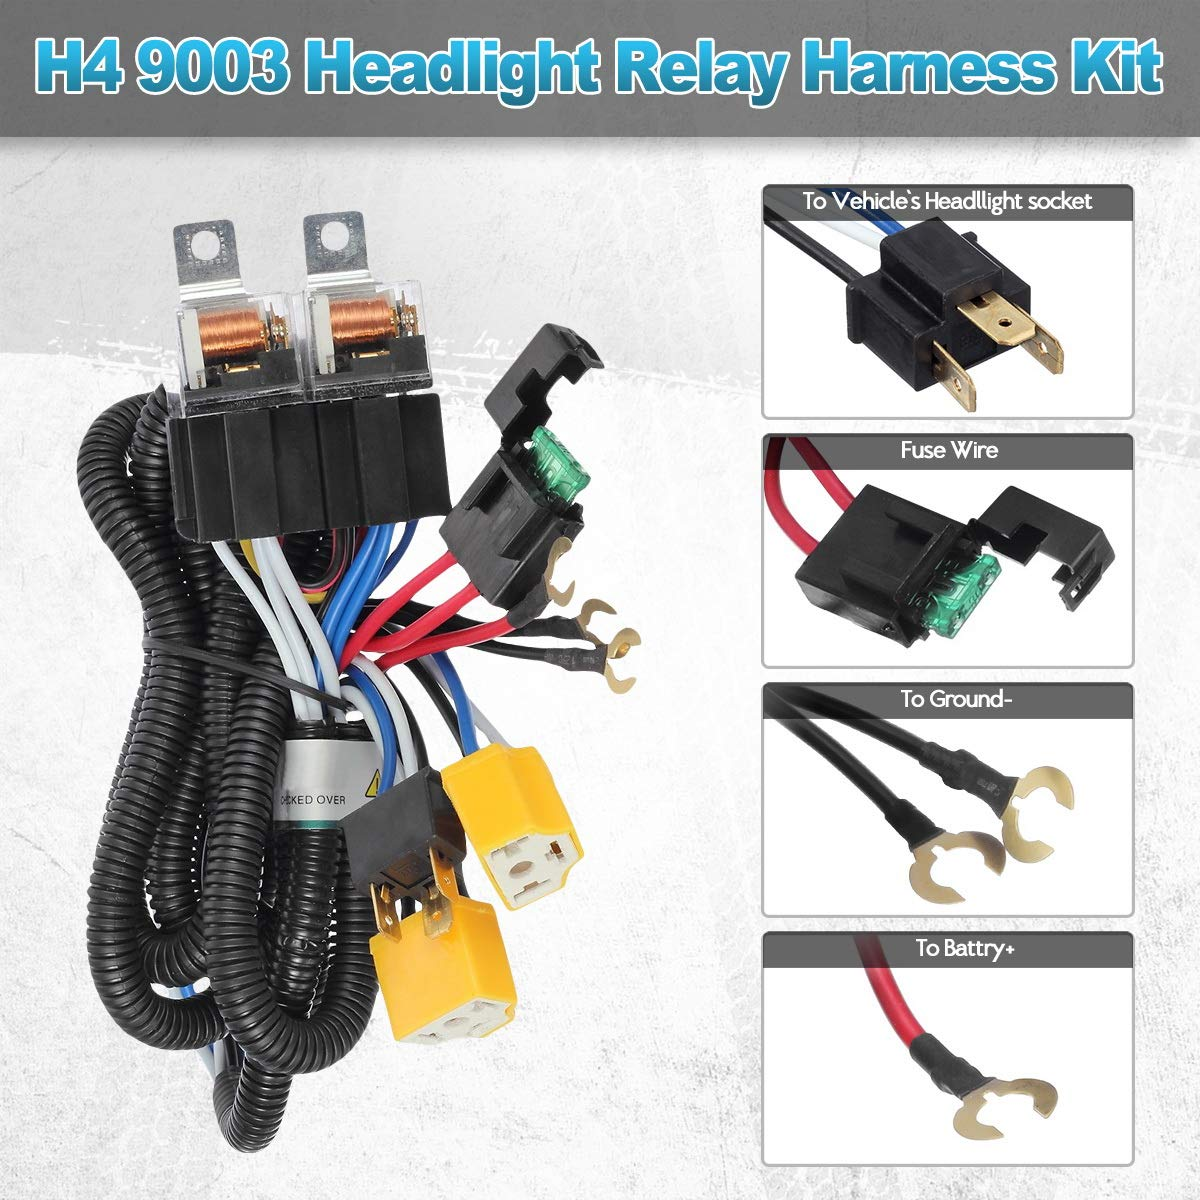 Partsam H4 9003 Headlight Relay Wiring Harness Kit High Jeep Wrangler Low Beam Heat Ceramic Socket Plugs Hid Conversion Compatible With Toyota Pickup